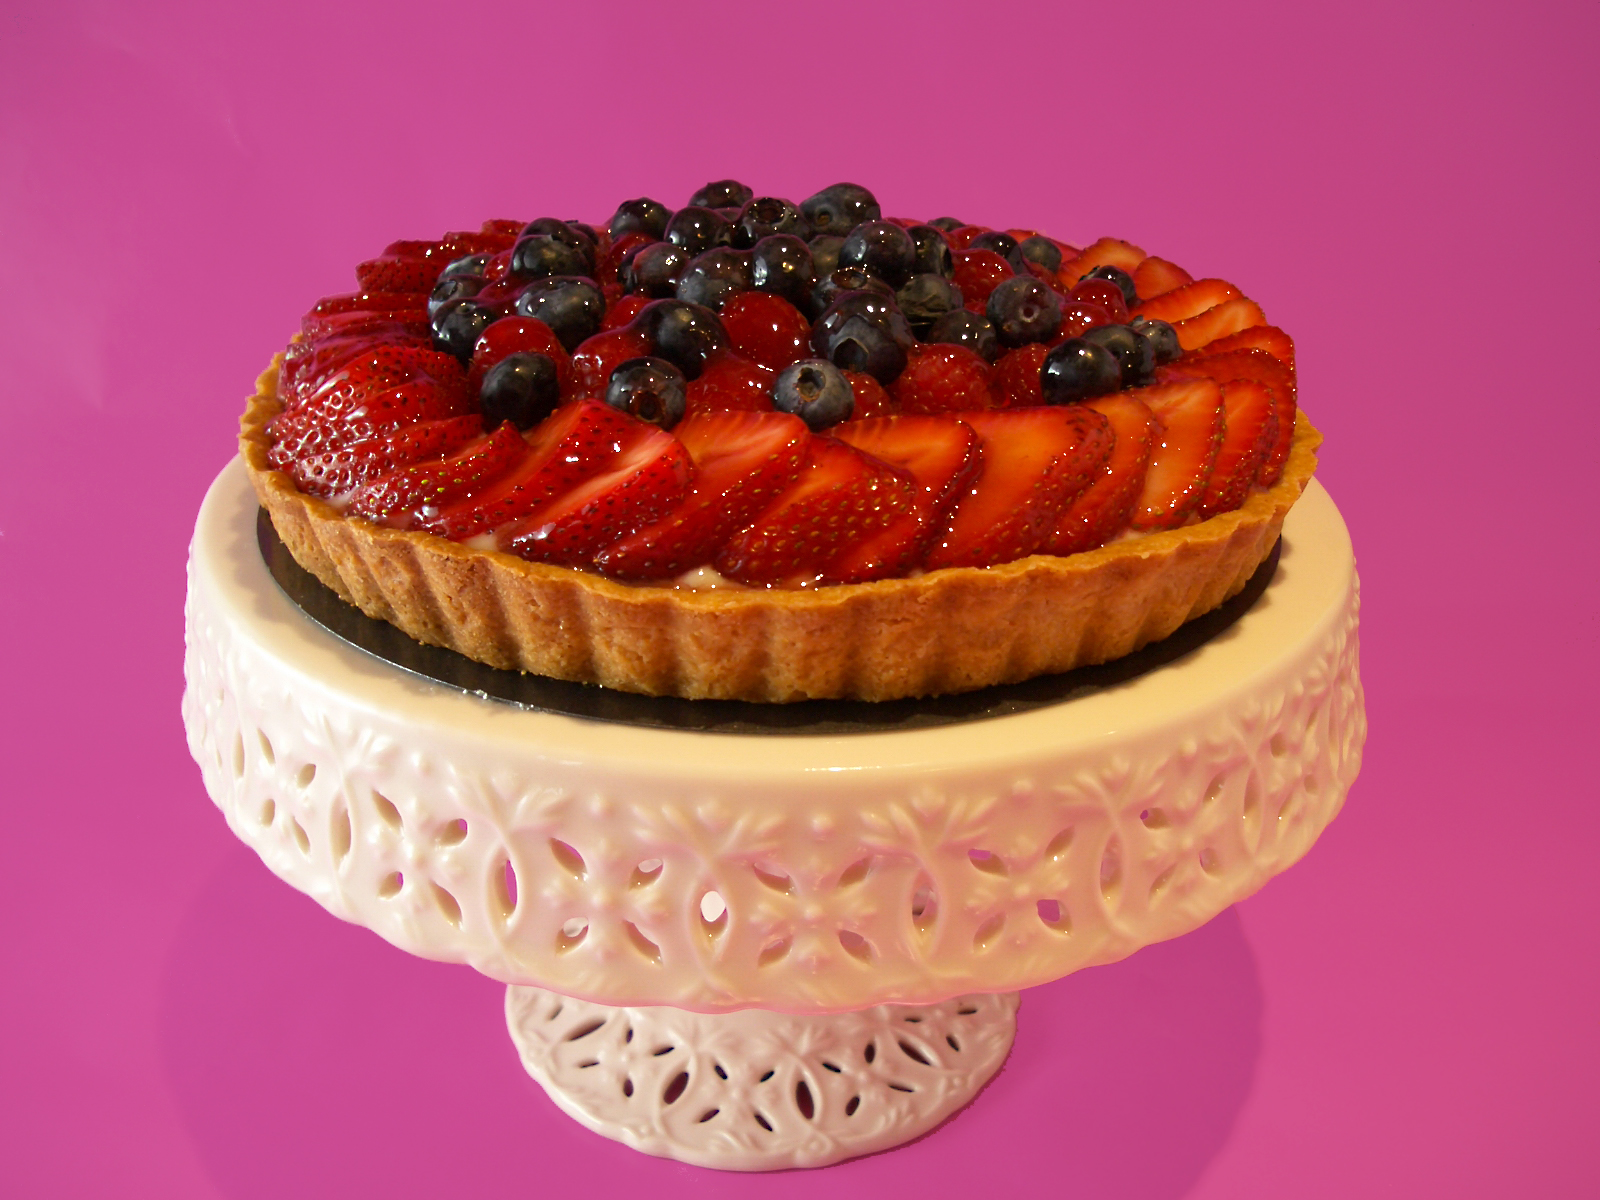 Goodies by Anna: Fresh Berry Tart with Cornmeal Pate Brisee Crust